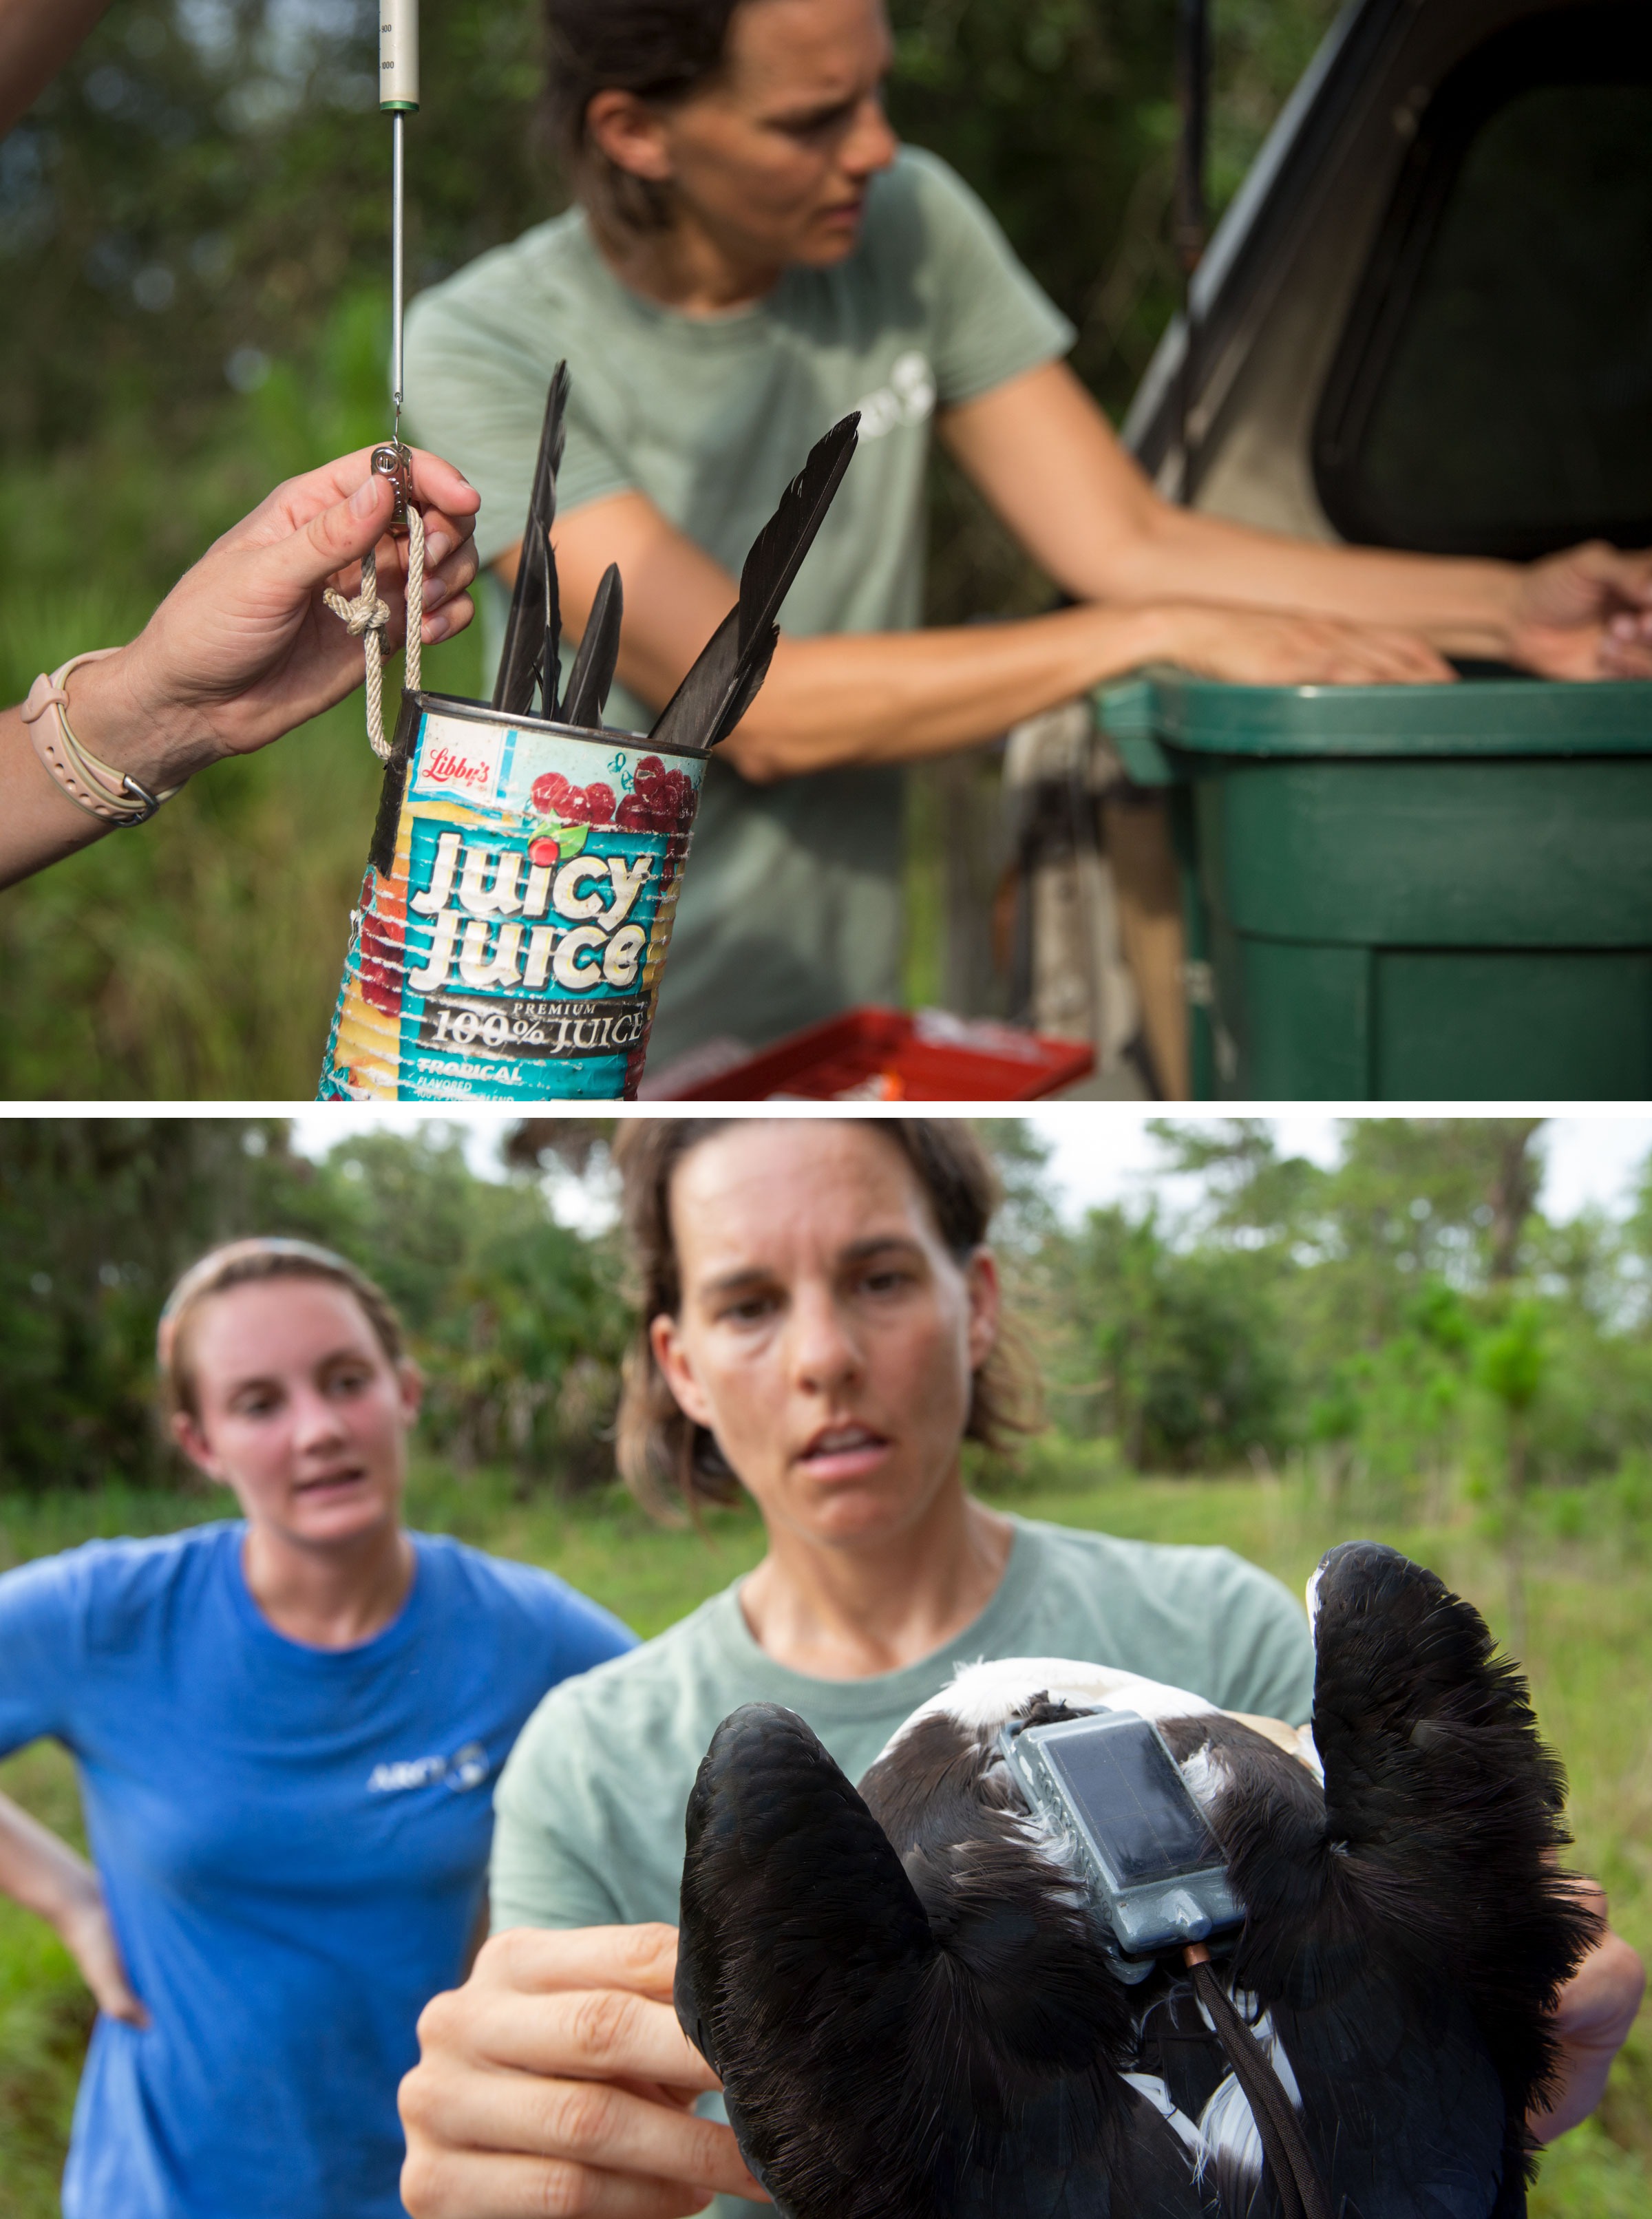 Before attaching a transmitter to the kite, they weigh and measure the bird (top). Gina Kent adjusts the harness of a solar-powered GSM/GPS transmitter (bottom), which can relay the bird's location for years. Photos: Mac Stone